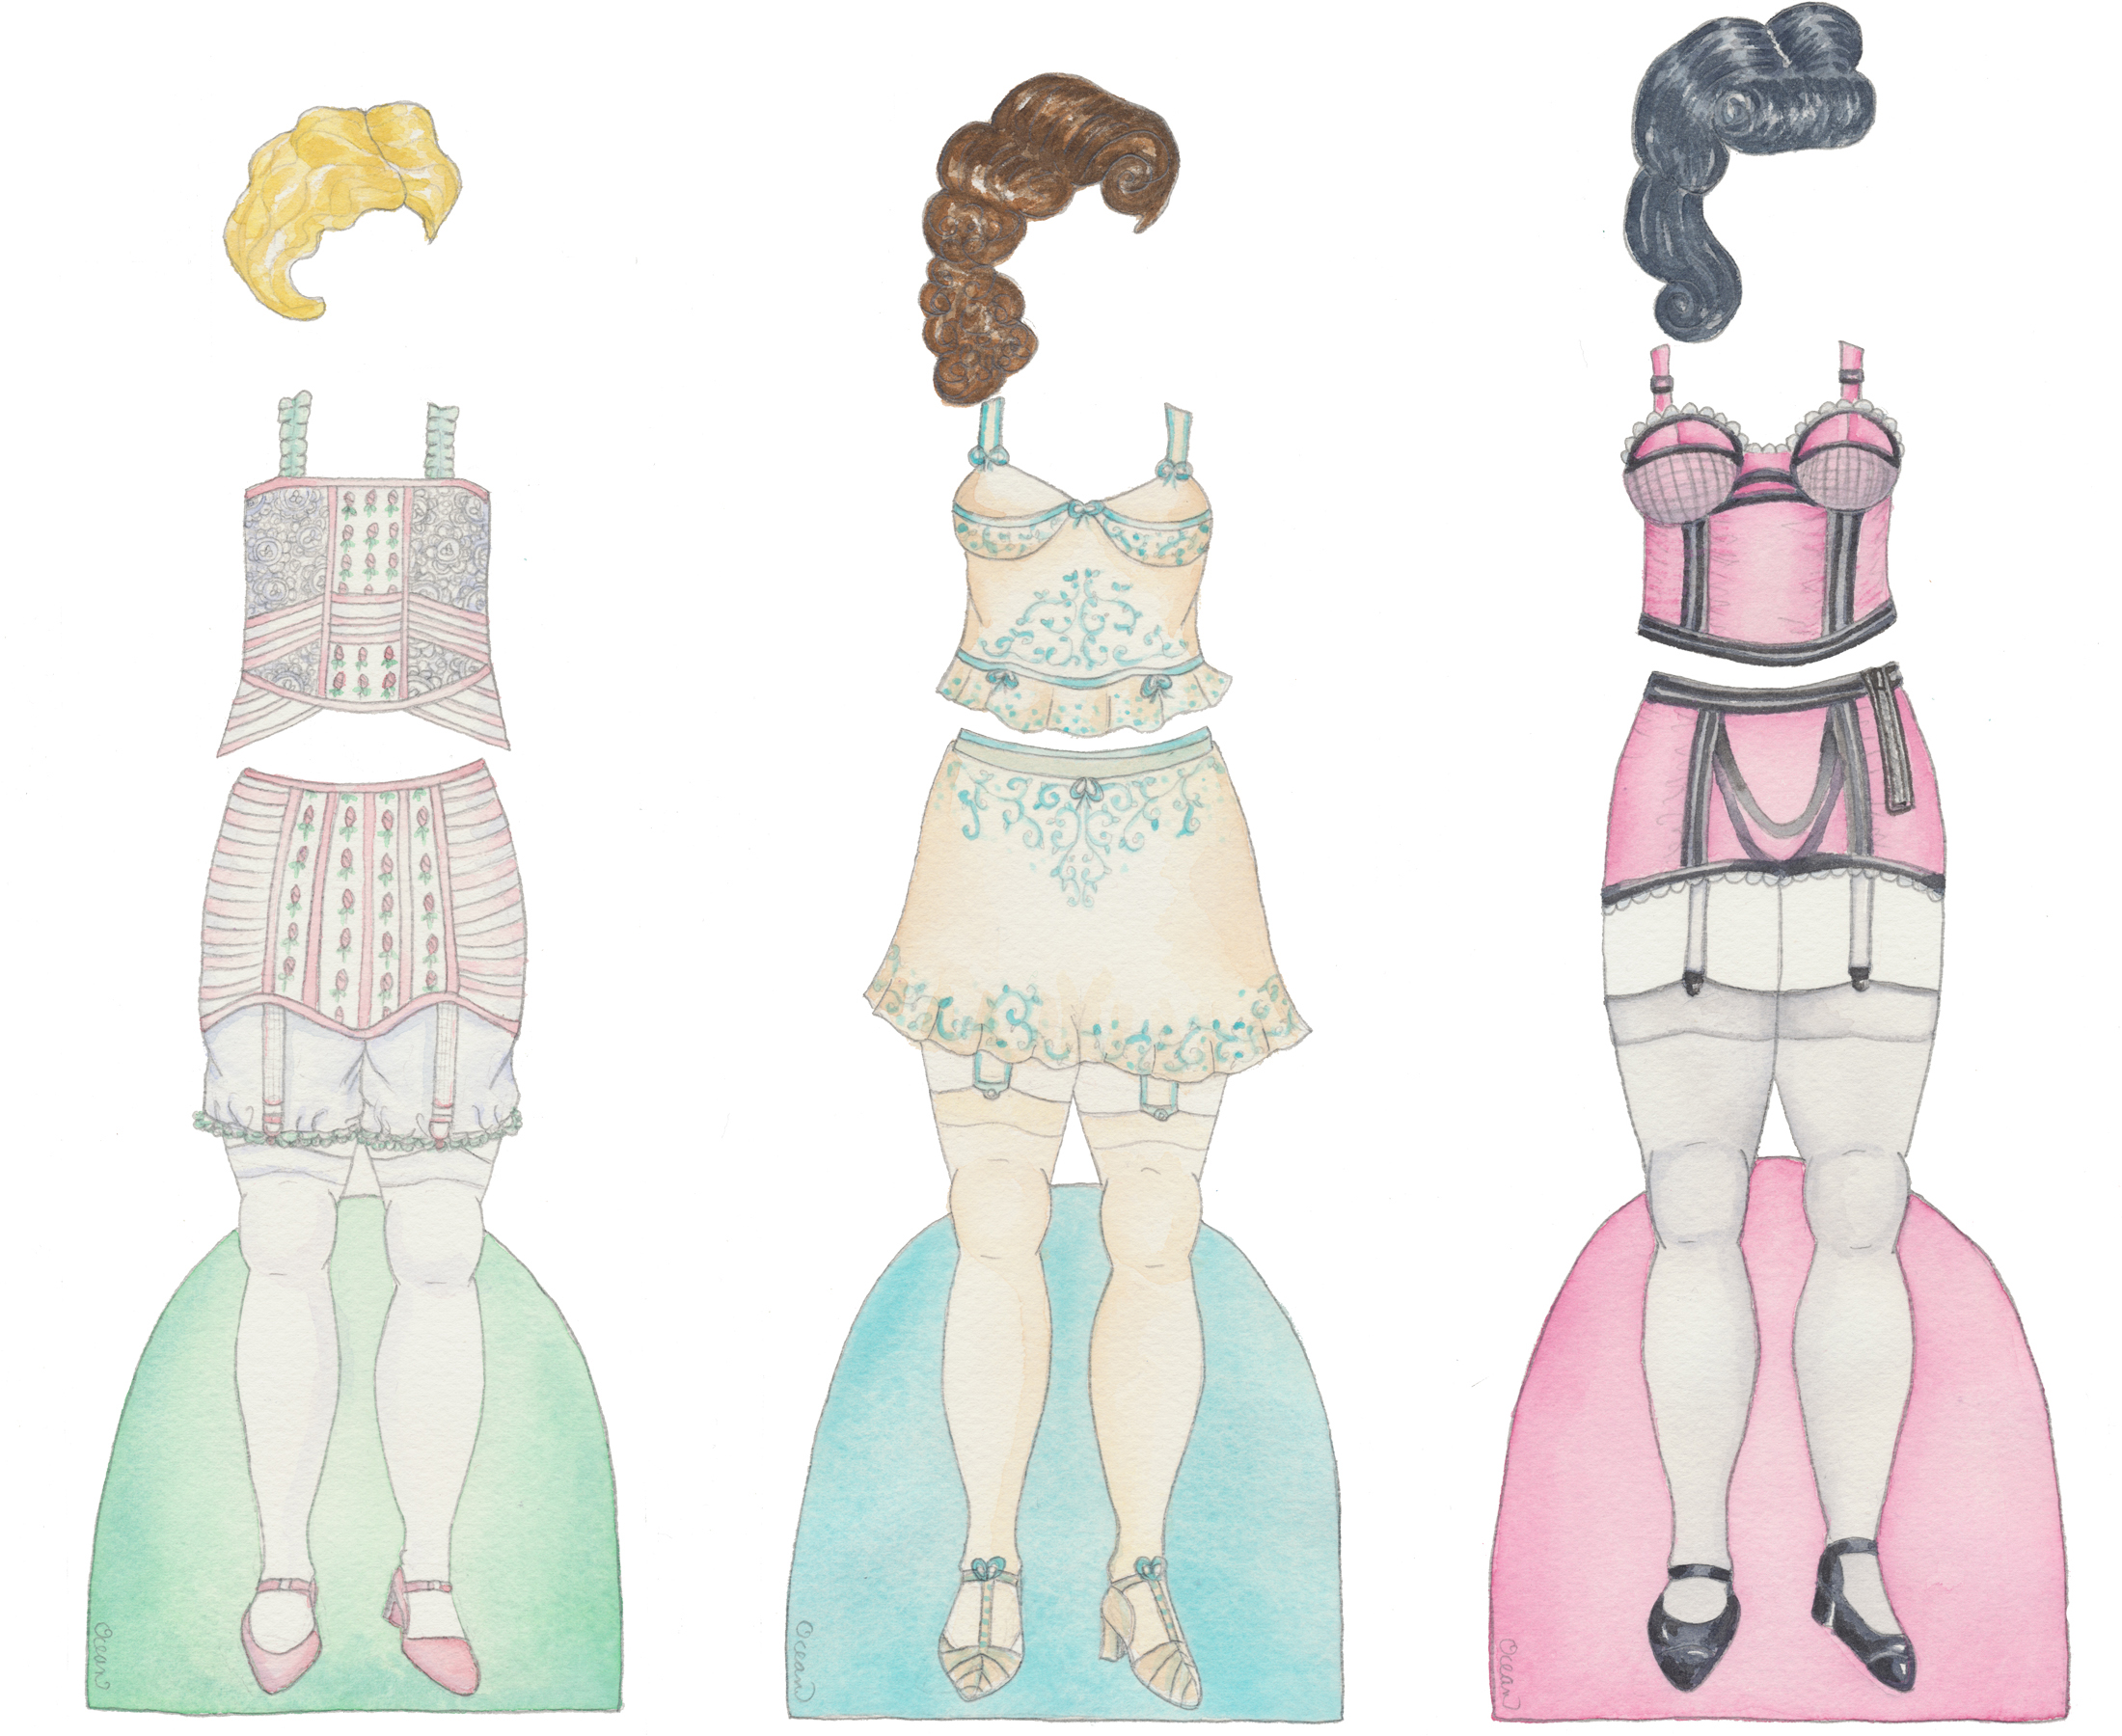 Custom bridal shower invitation printed as a set of paper dolls for each guest